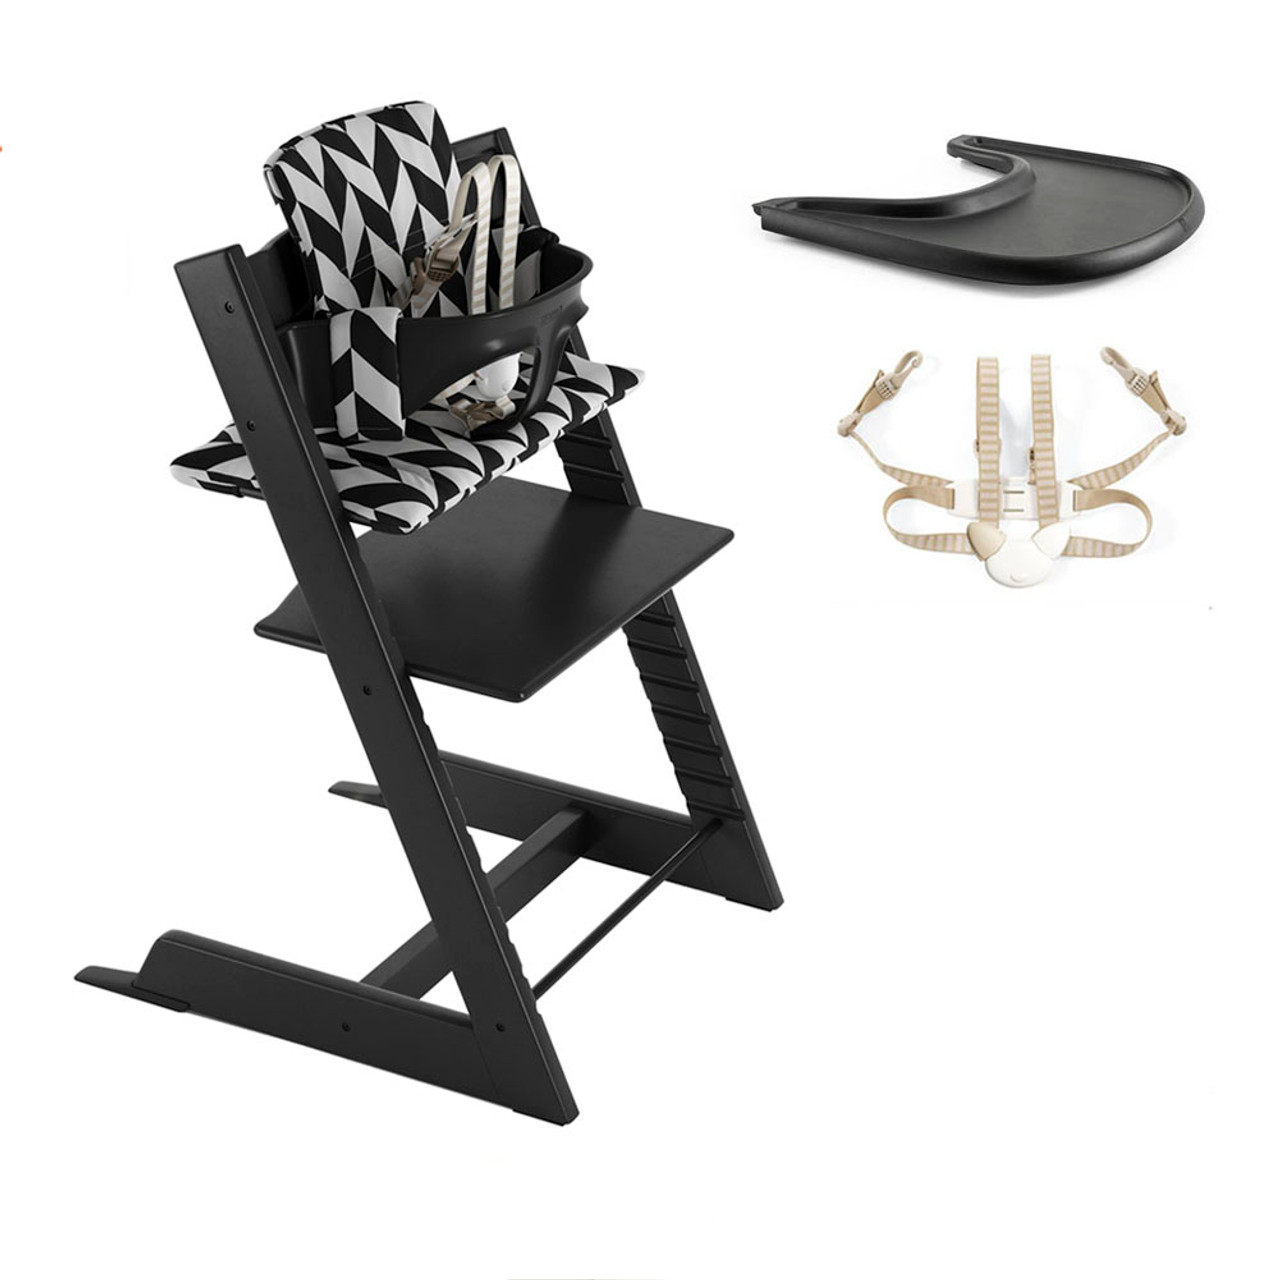 Stokke Tripp Trapp High Chair Complete Black With Black Chevron Cushion